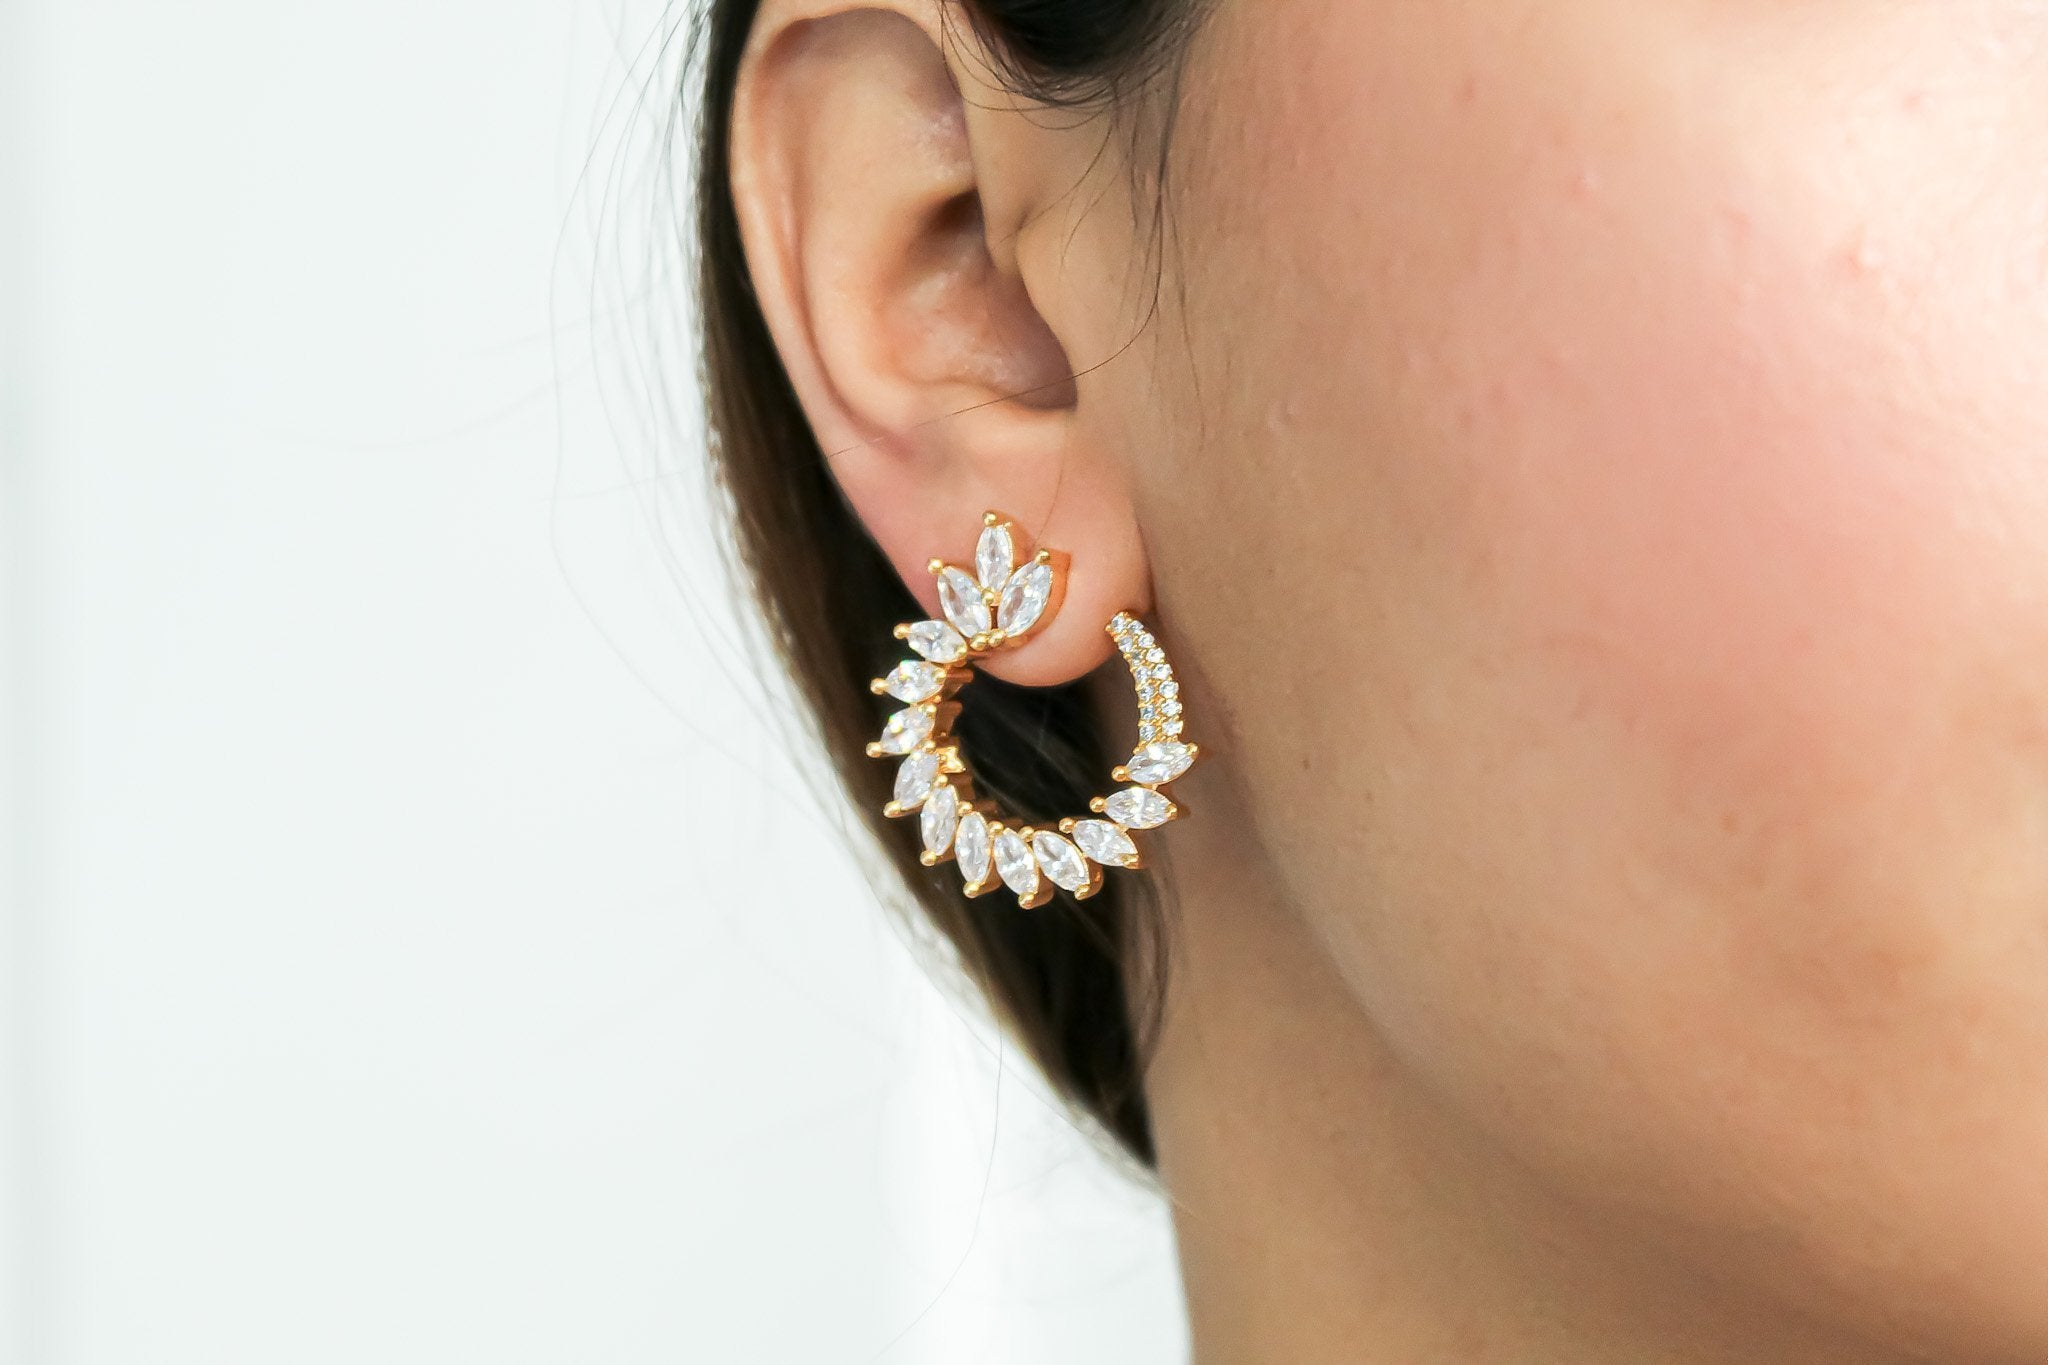 Golden Viper Earrings